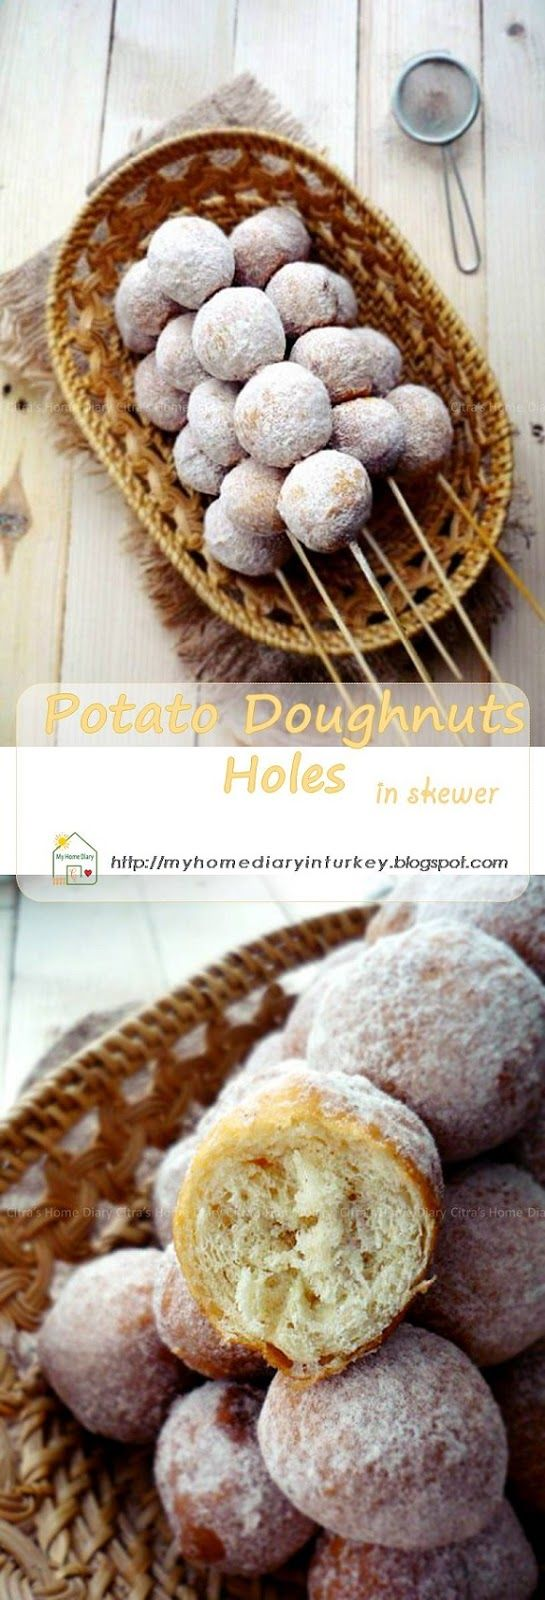 Potato Doughnuts holes in skewer